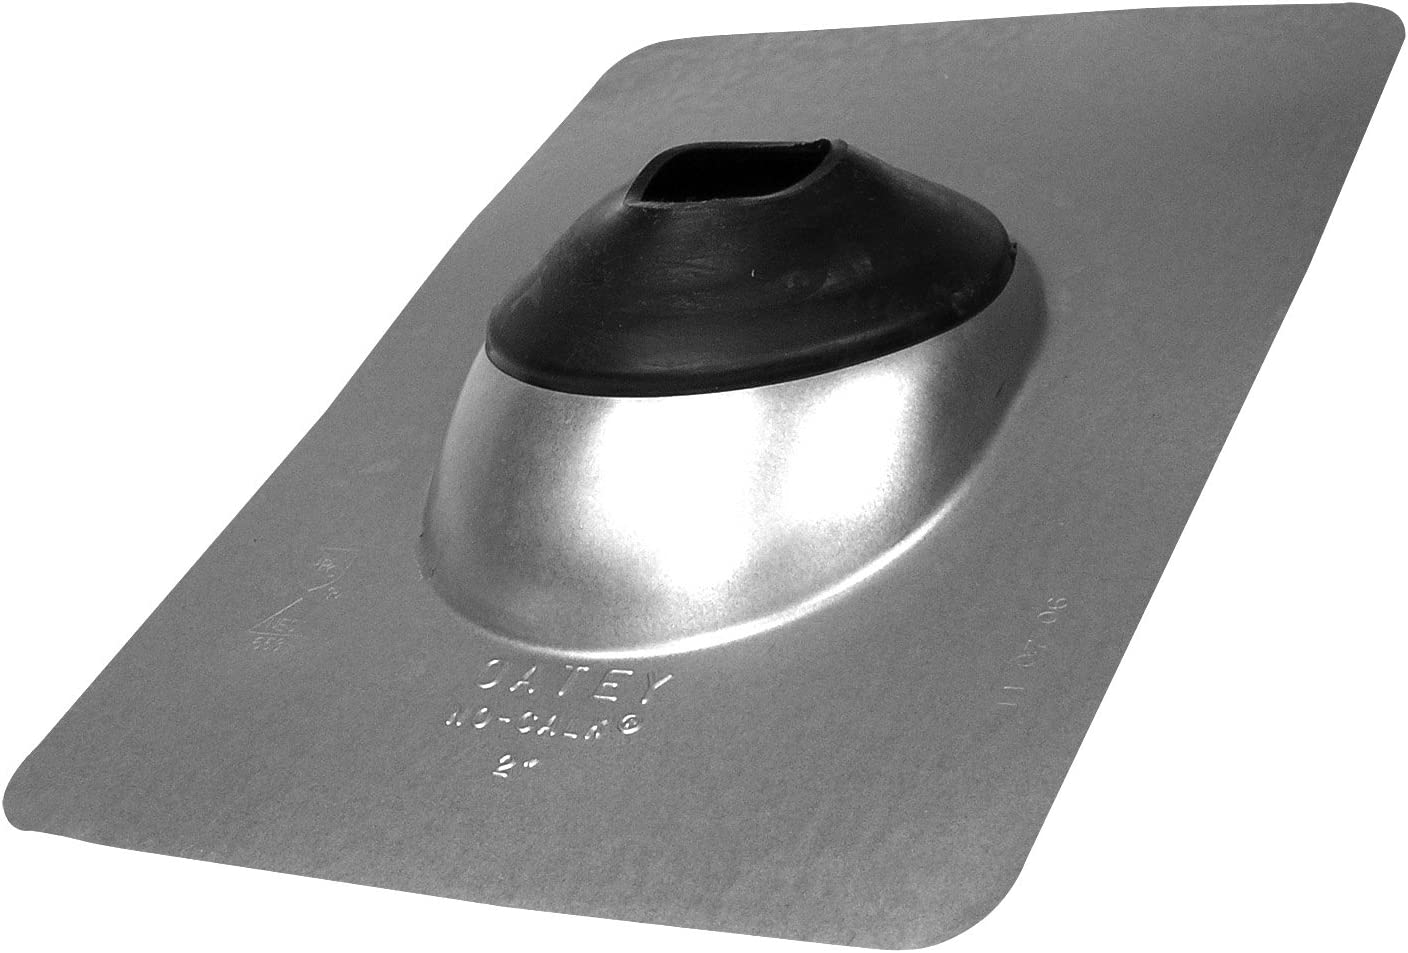 Oatey 11840 Galvanized 1 pipe diameter No-Calk Roof Flashing 9 x 12.5 Base